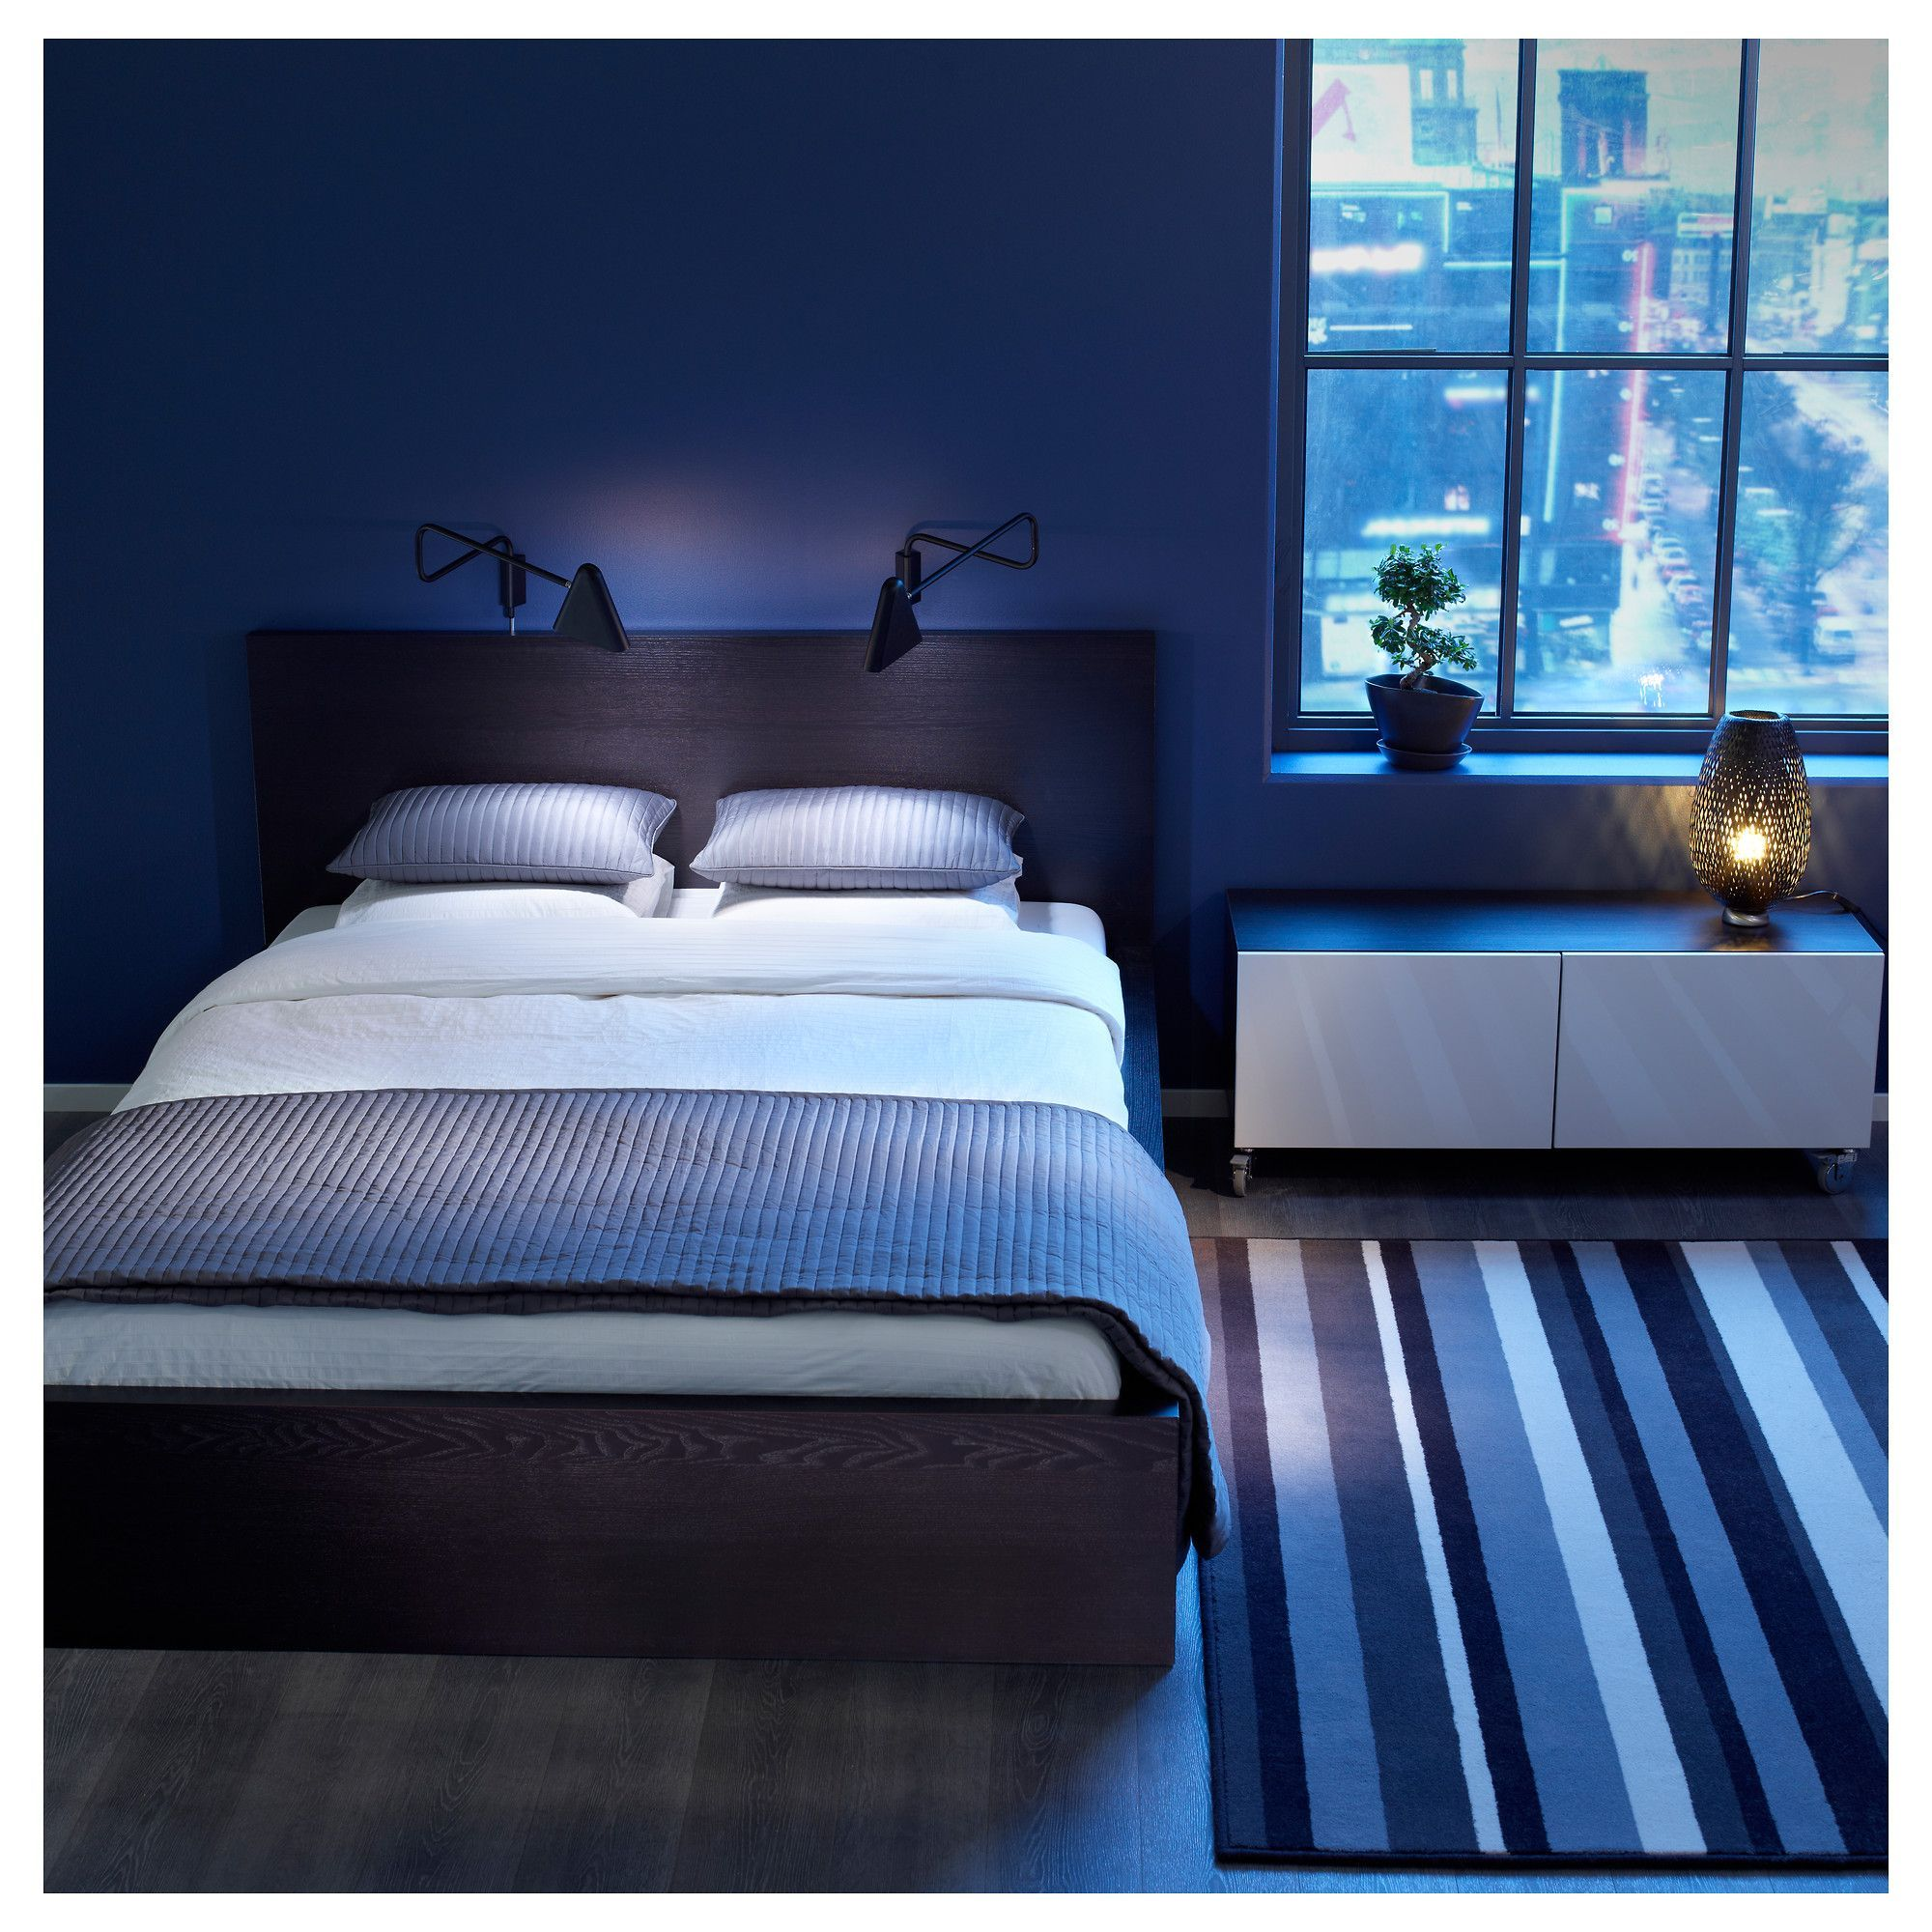 Dark blue and black bedroom - Best Blue Themed Bedroom Decorations With Dark Wooden Platform Bed Plus White Bedding Plus Brown Wooden Headbaord Plus White Cushions And Striped Carpet